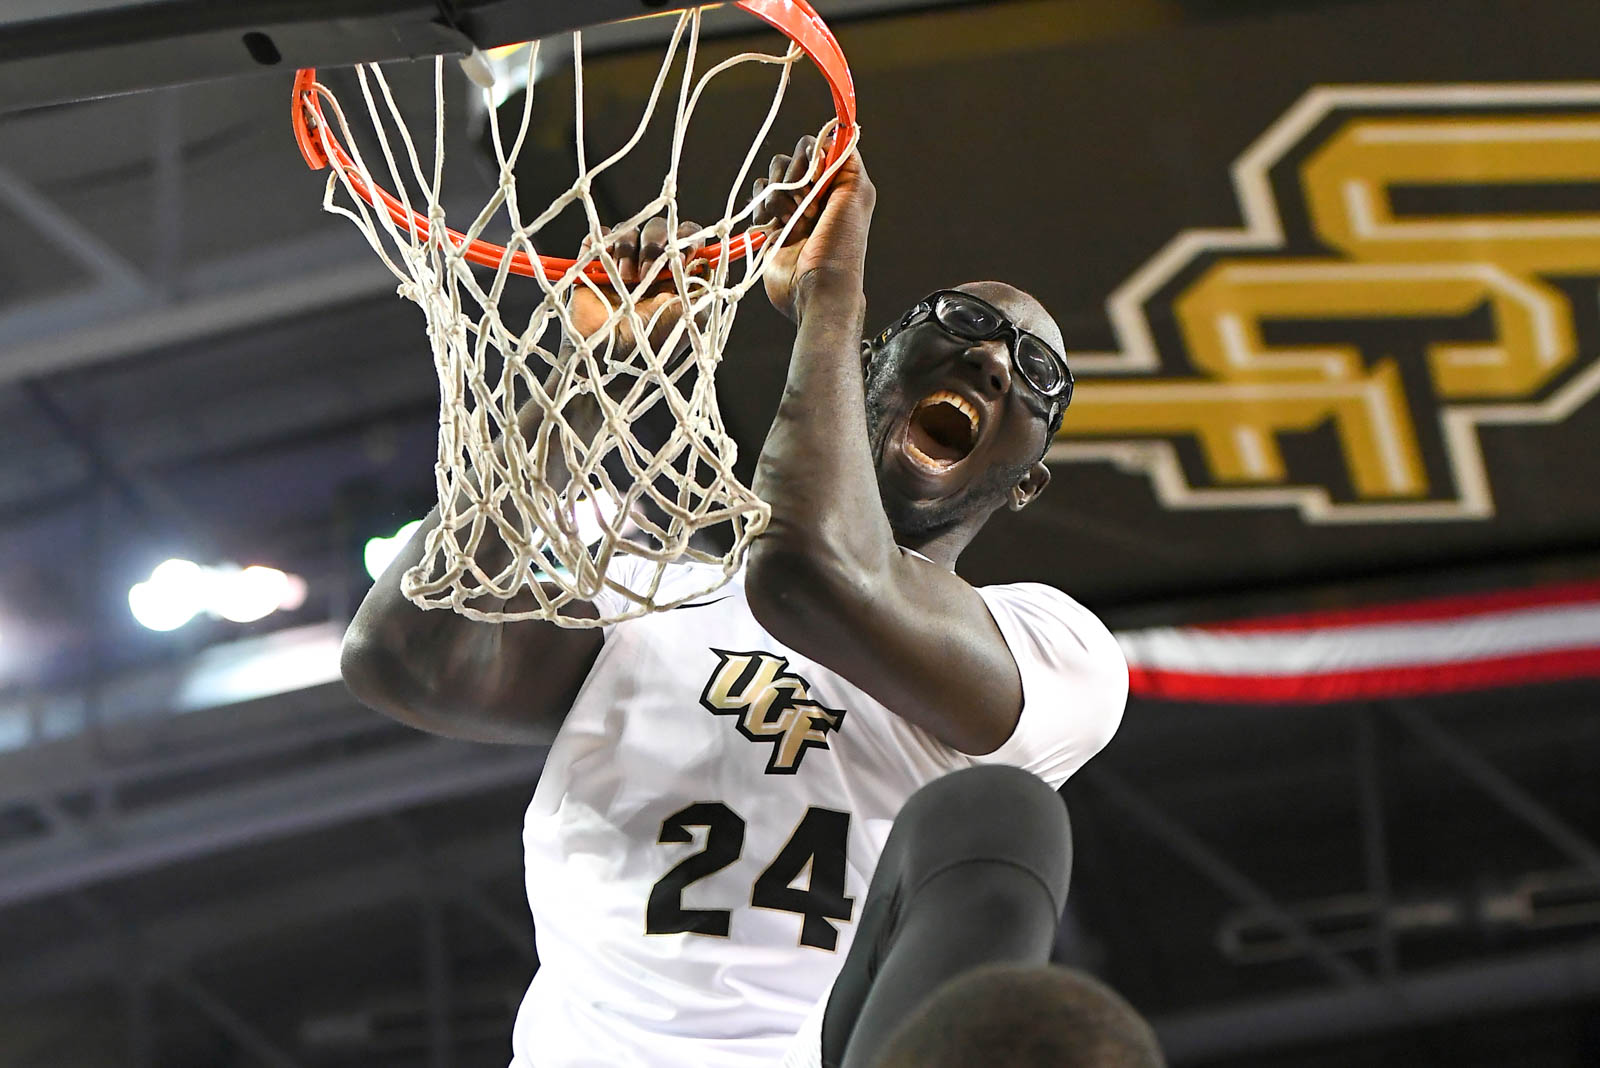 ucf-best-of-photos-tacko-fall